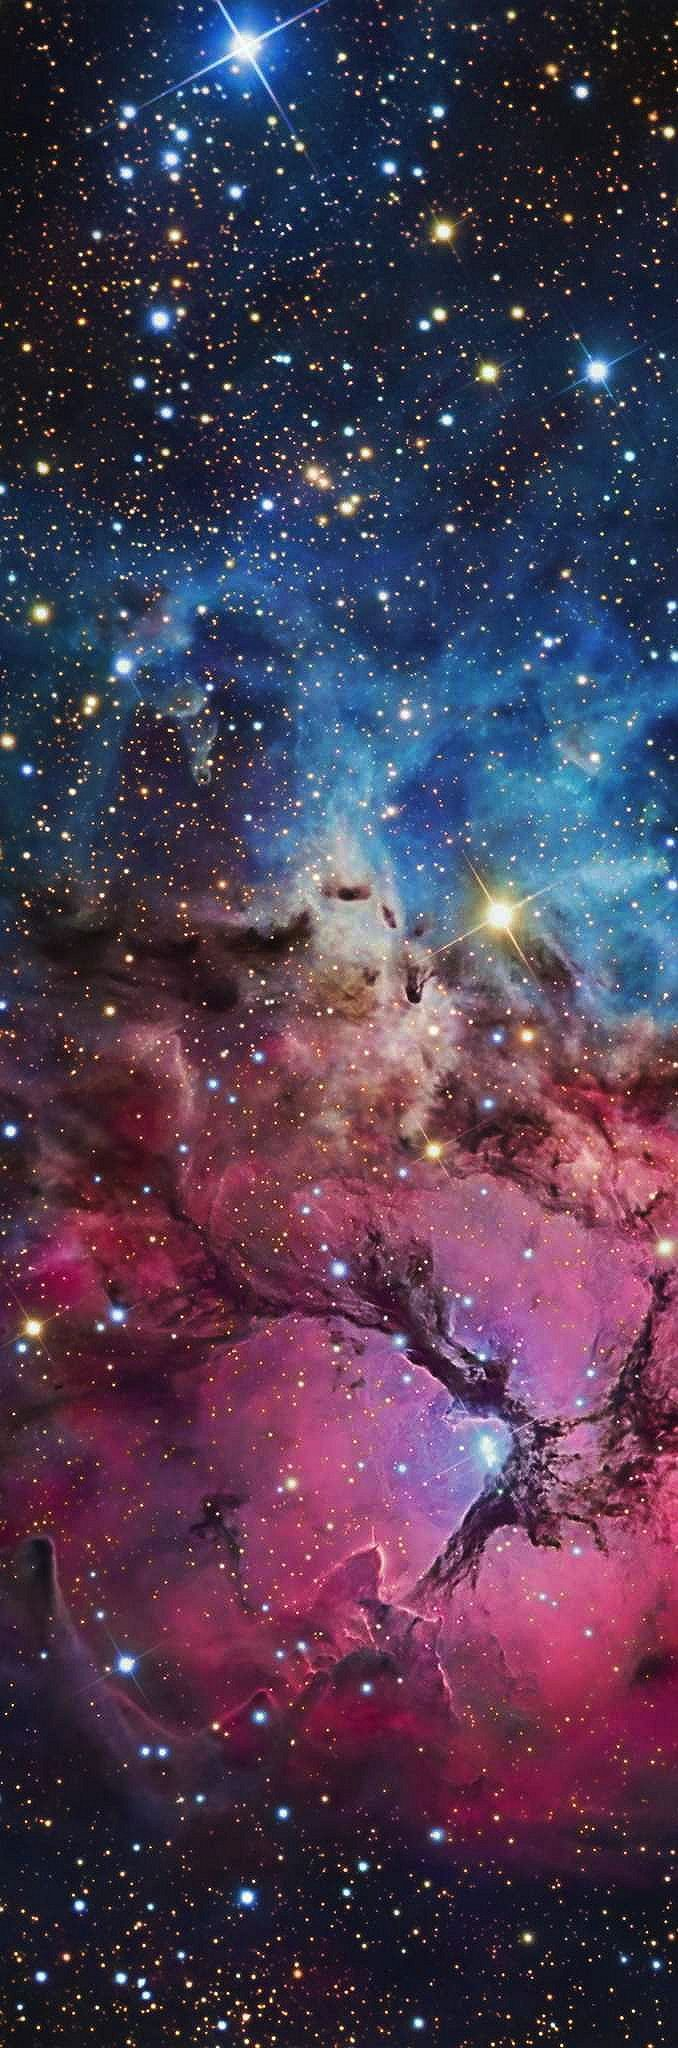 Triffid Nebula. You should follow me to see more perfect pins:eskindefneeskin